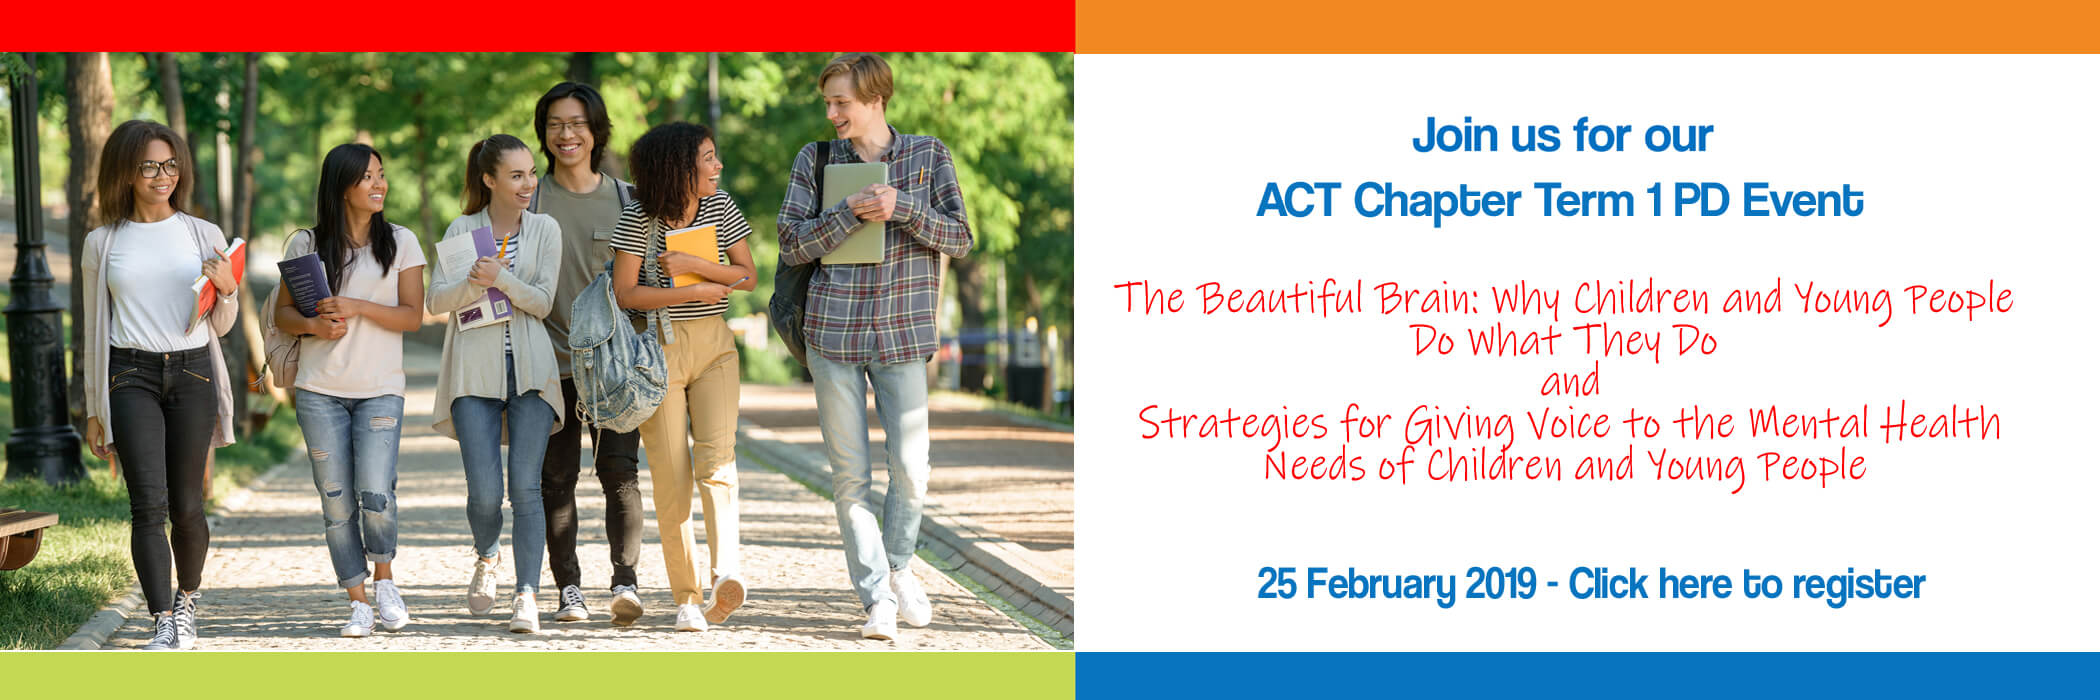 image for website ACT T1 2019 event